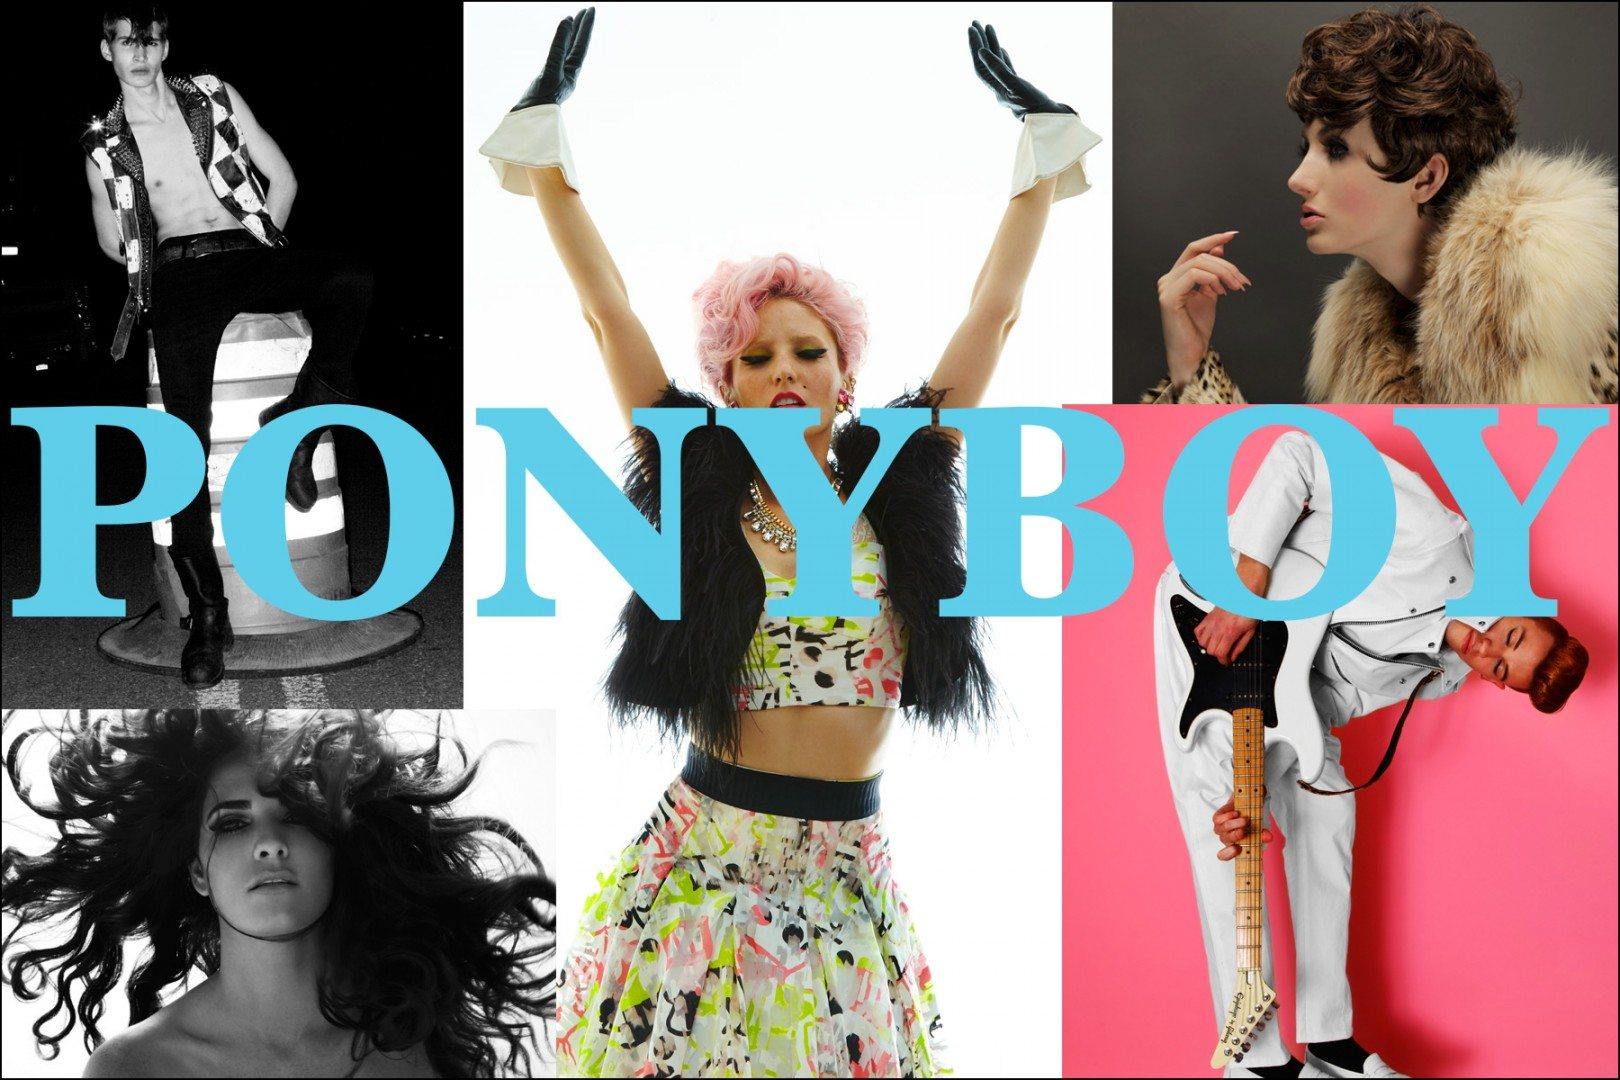 Ponyboy-ABOUT-Collage-1F